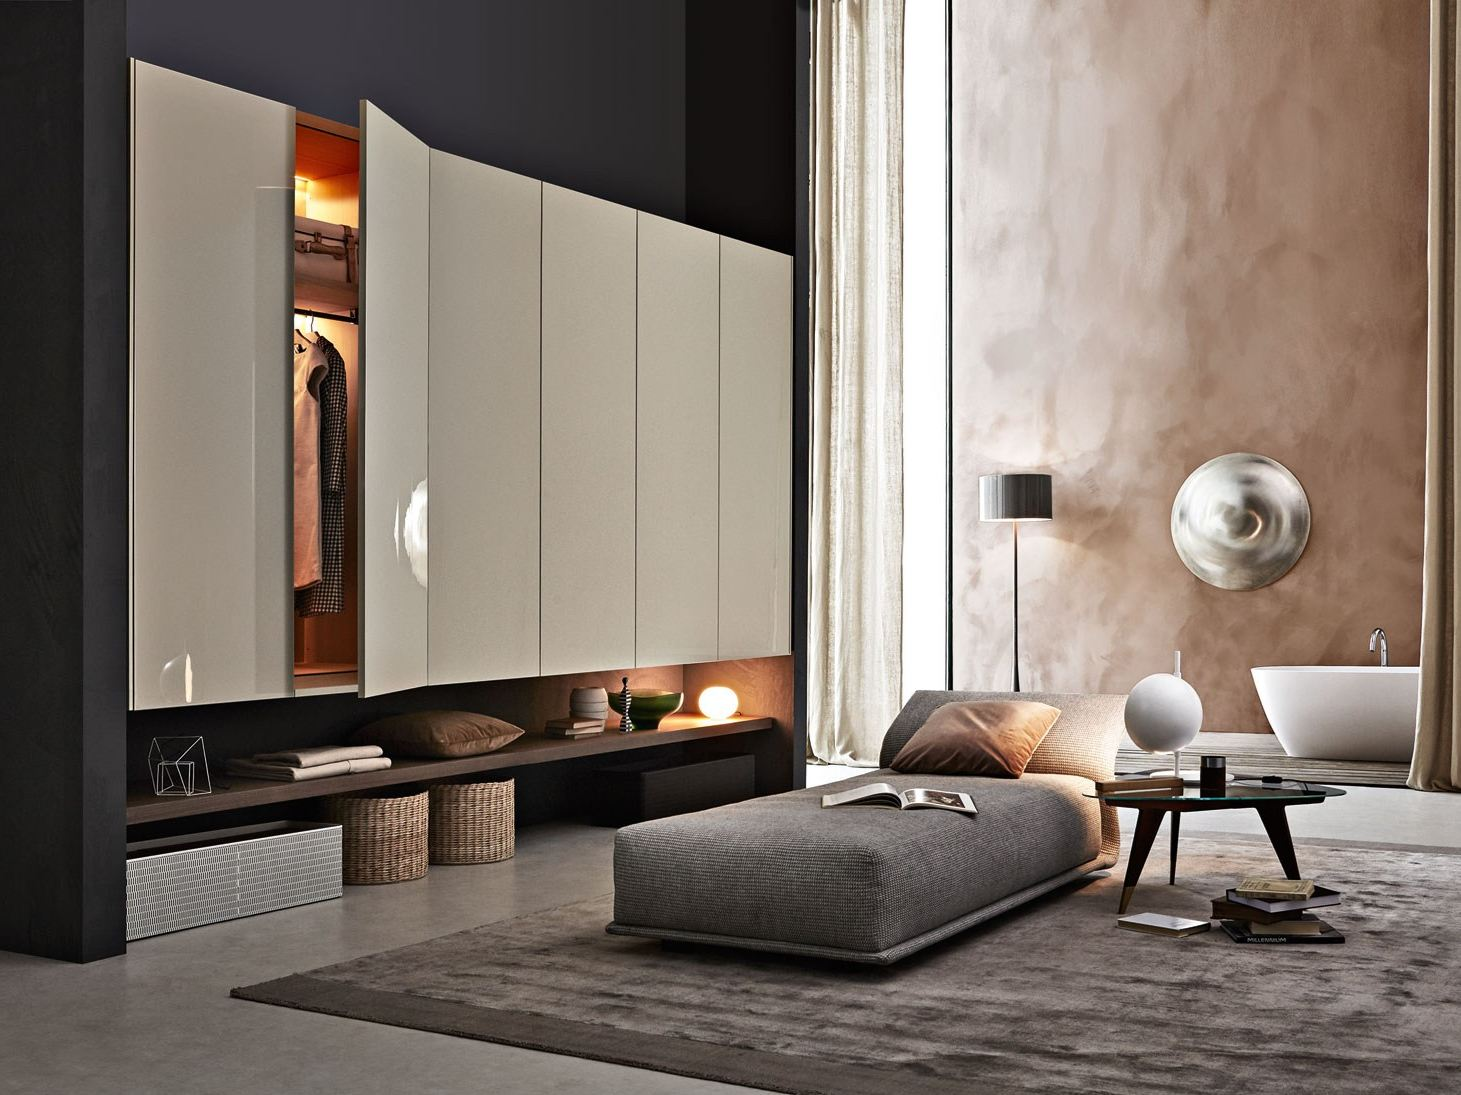 lacquered wardrobe with drawers gliss up by molteni design patricia urquiola. Black Bedroom Furniture Sets. Home Design Ideas